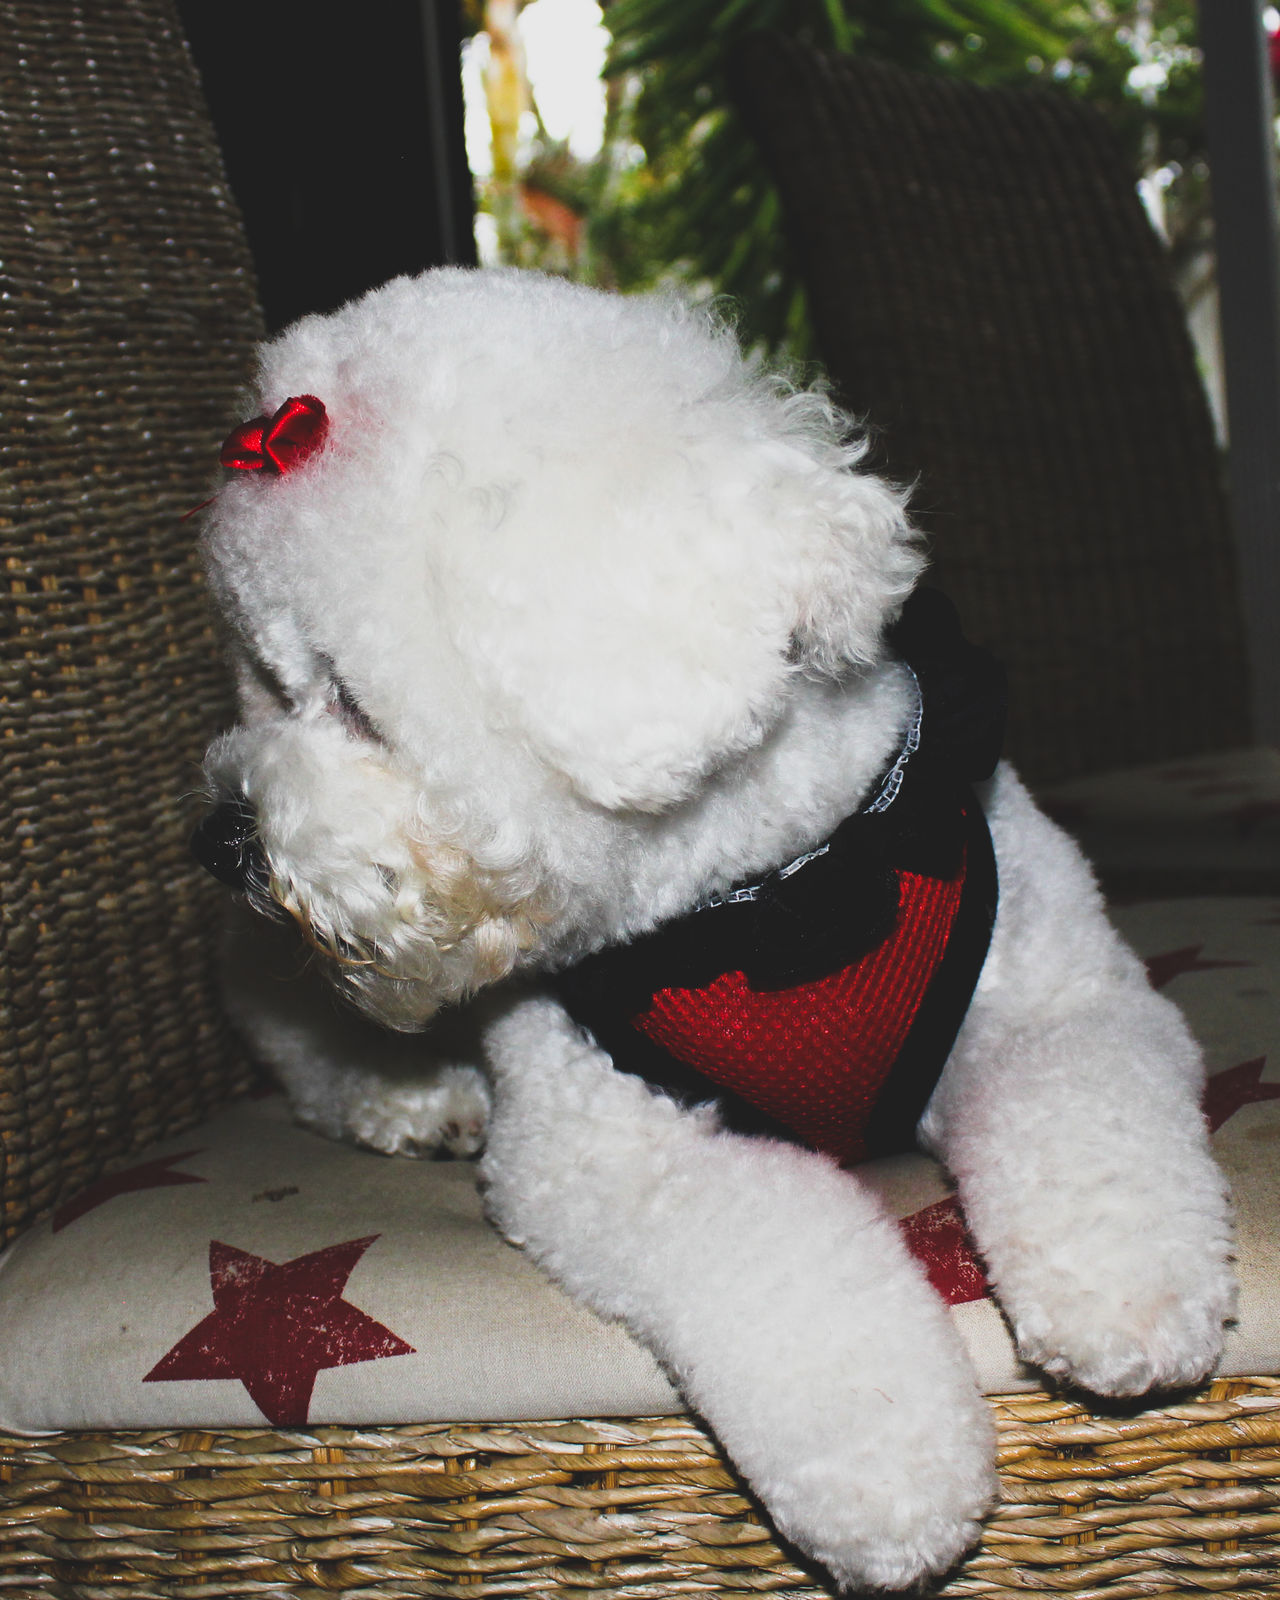 Animal Themes Bichon Bichon Frise Bichonfrise Canine Close-up Day Dog Dogs Domestic Animals Furry Friends Mammal No People One Animal Pet Pet Clothing Pet Photography  Pets